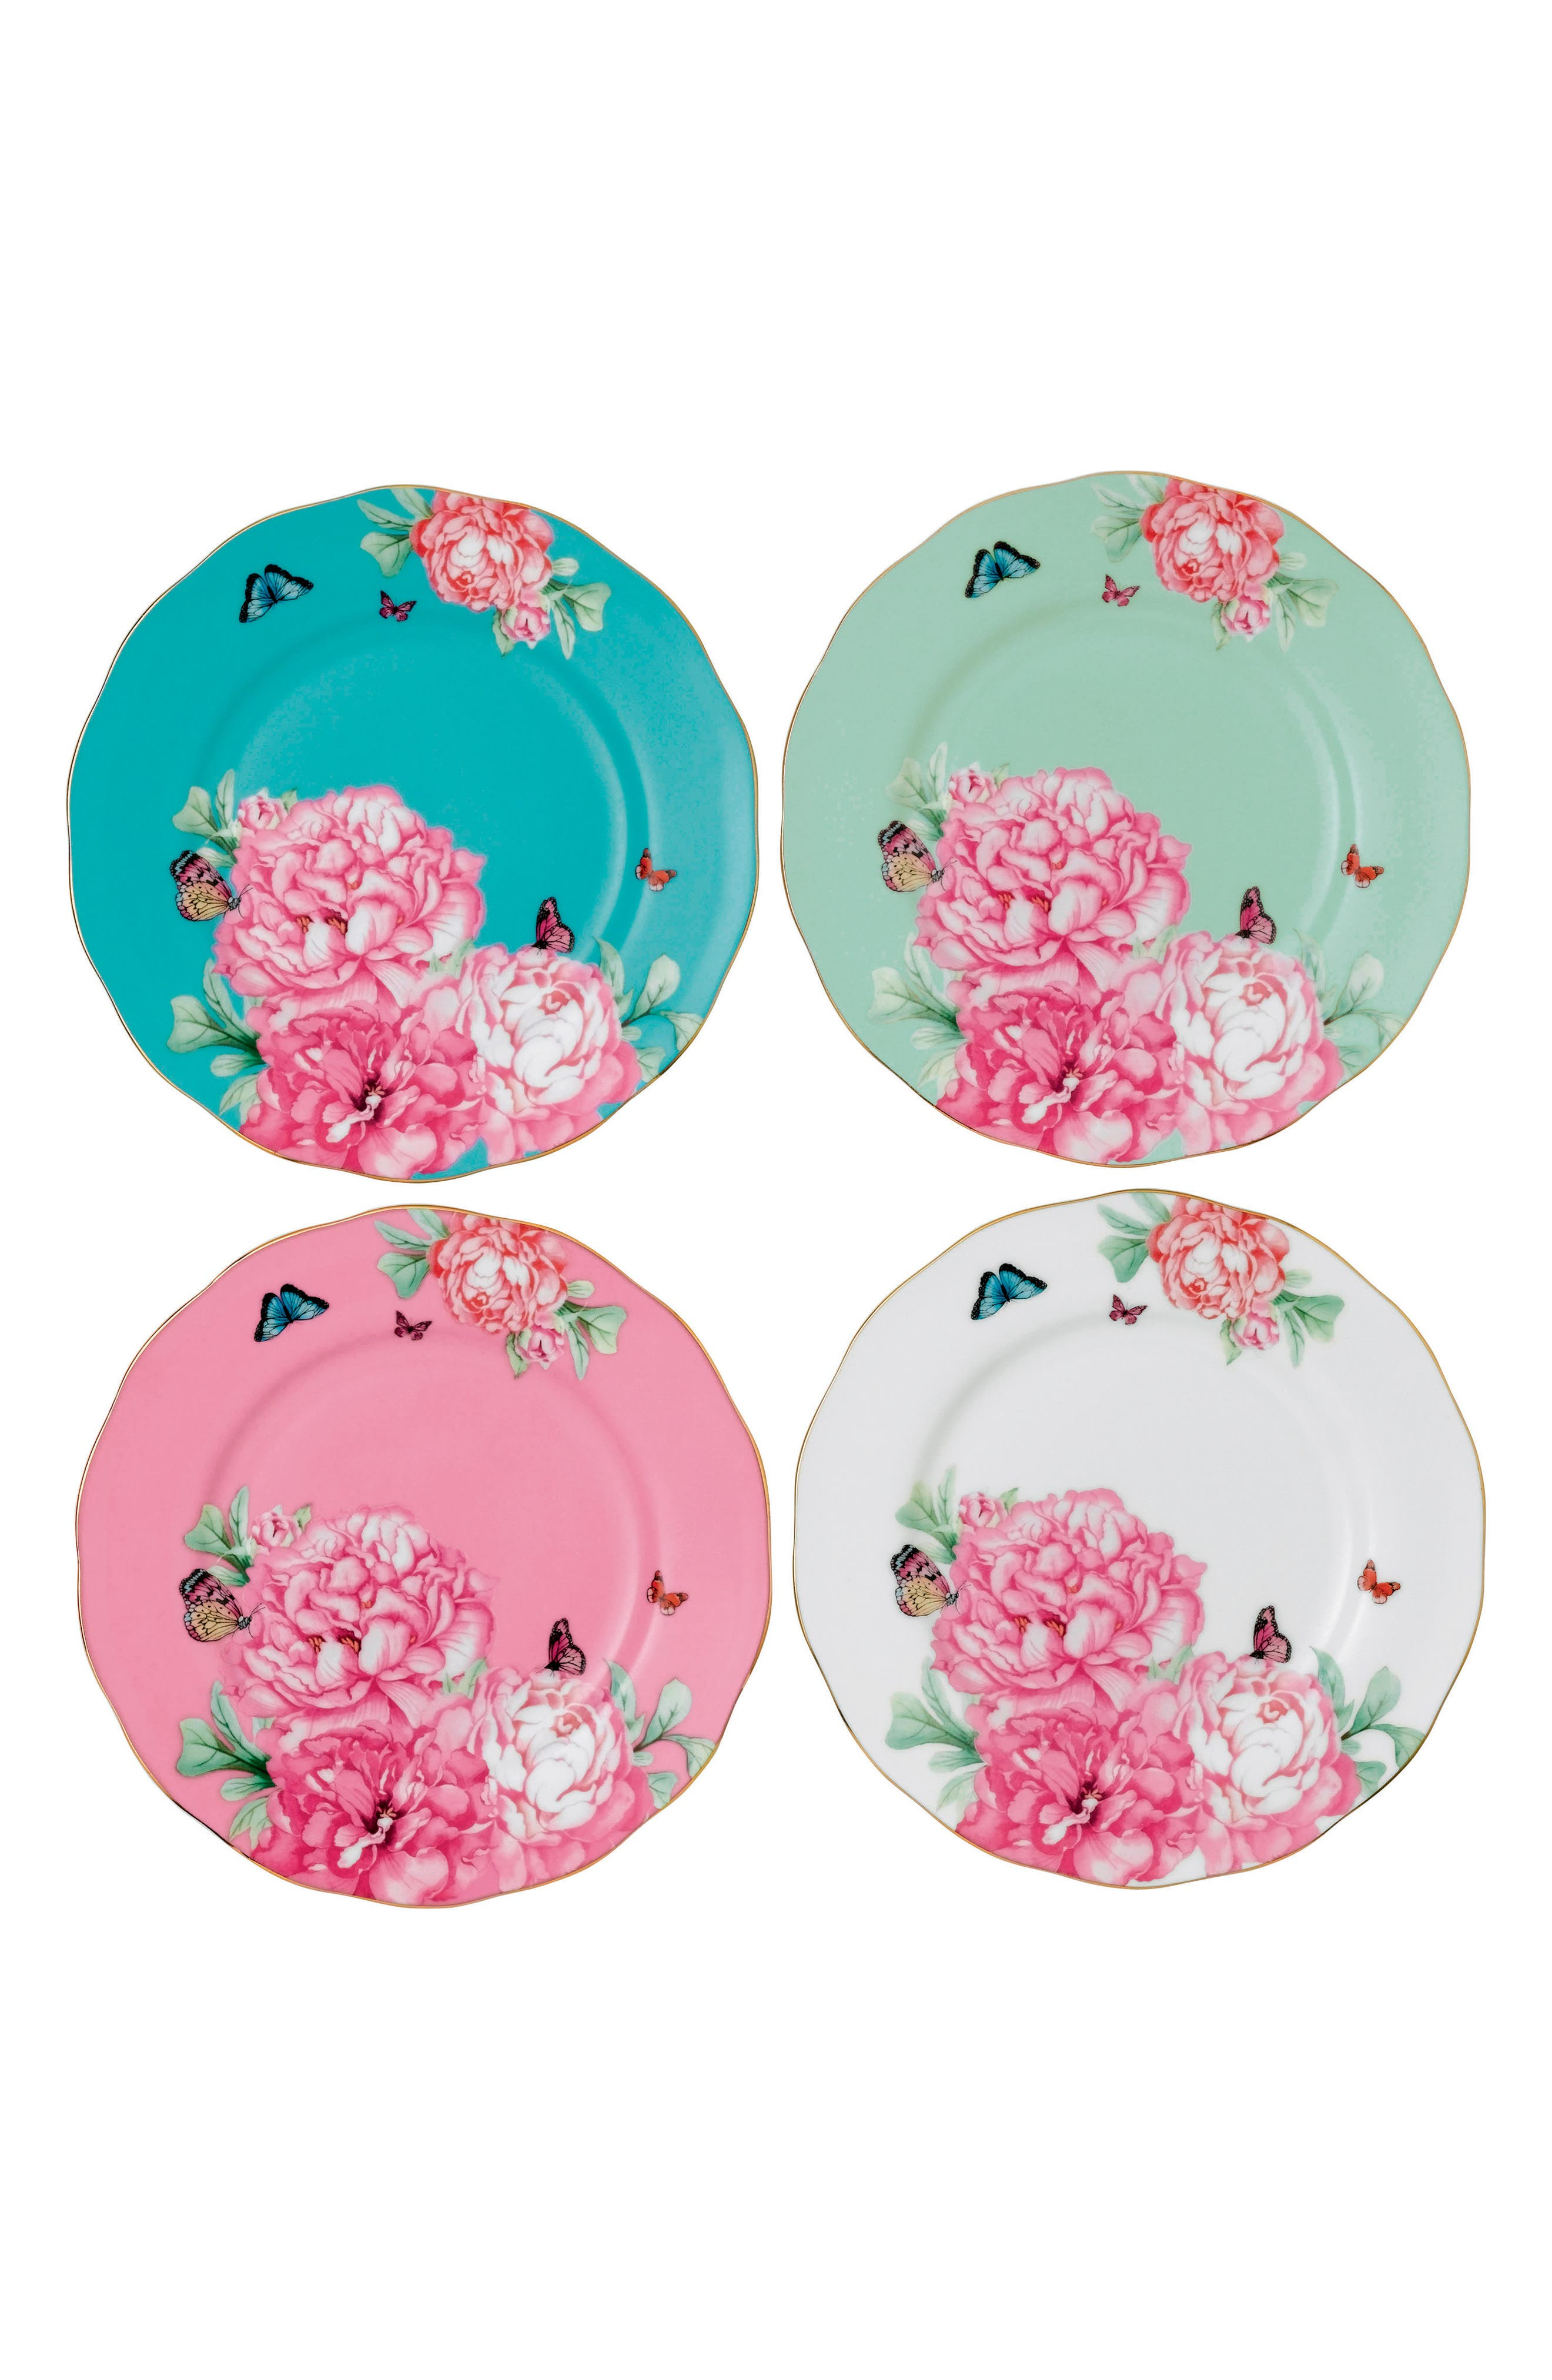 Friendship Set of 4 Accent Plates,                             Main thumbnail 1, color,                             650